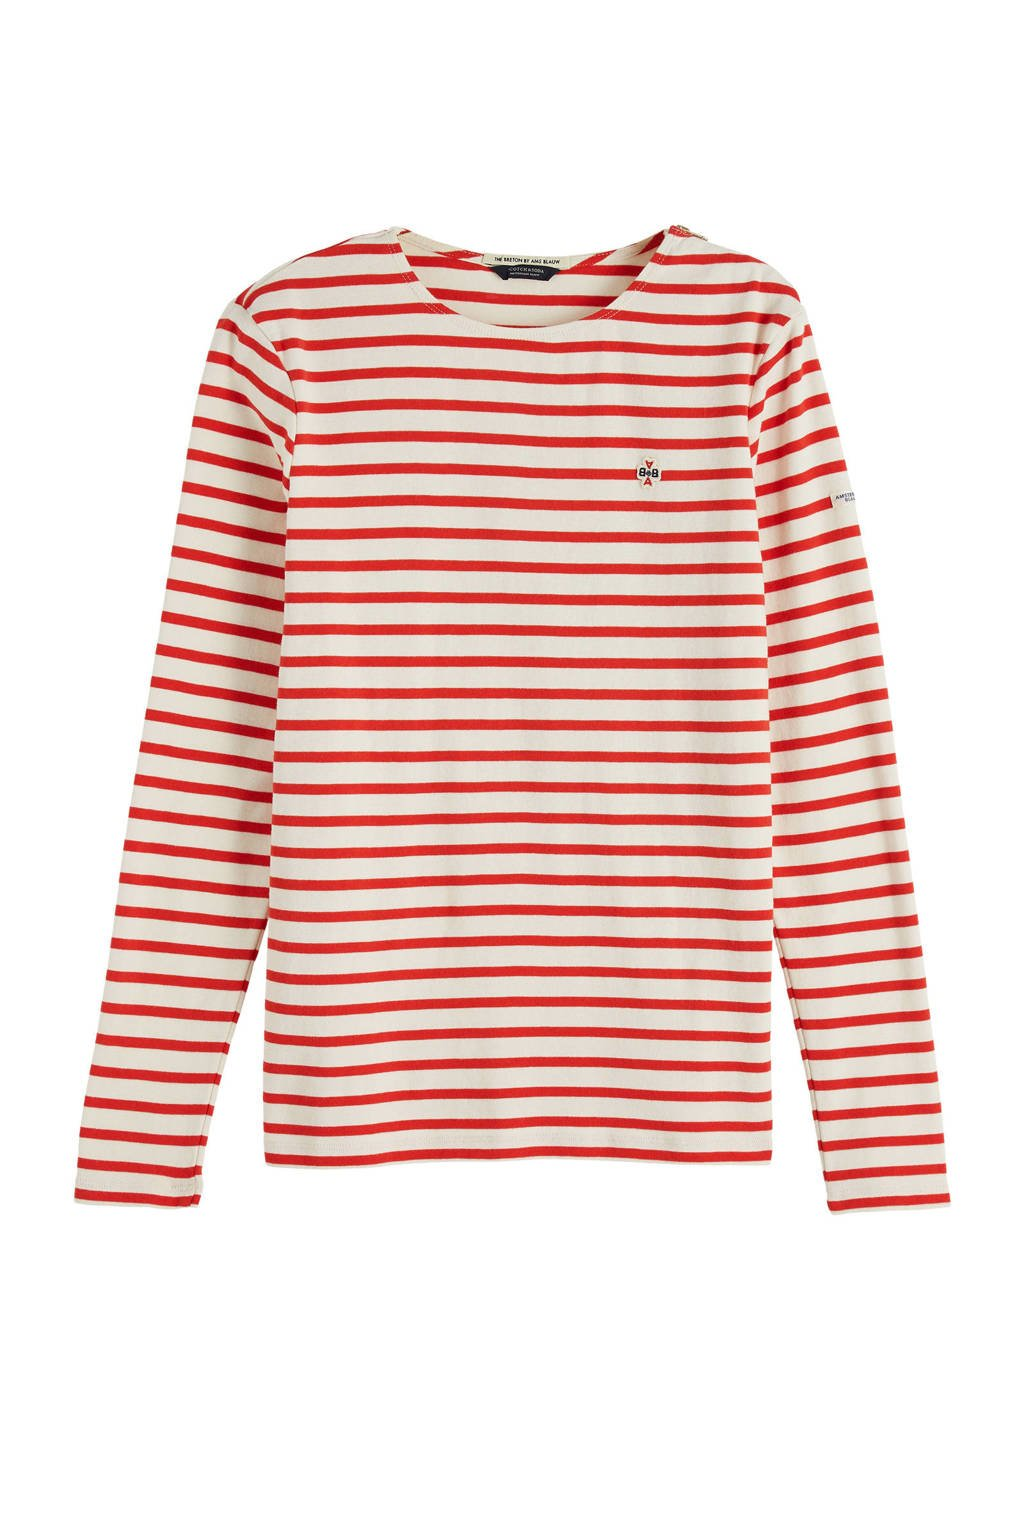 Scotch & Soda gestreepte top wit/rood, Wit/rood